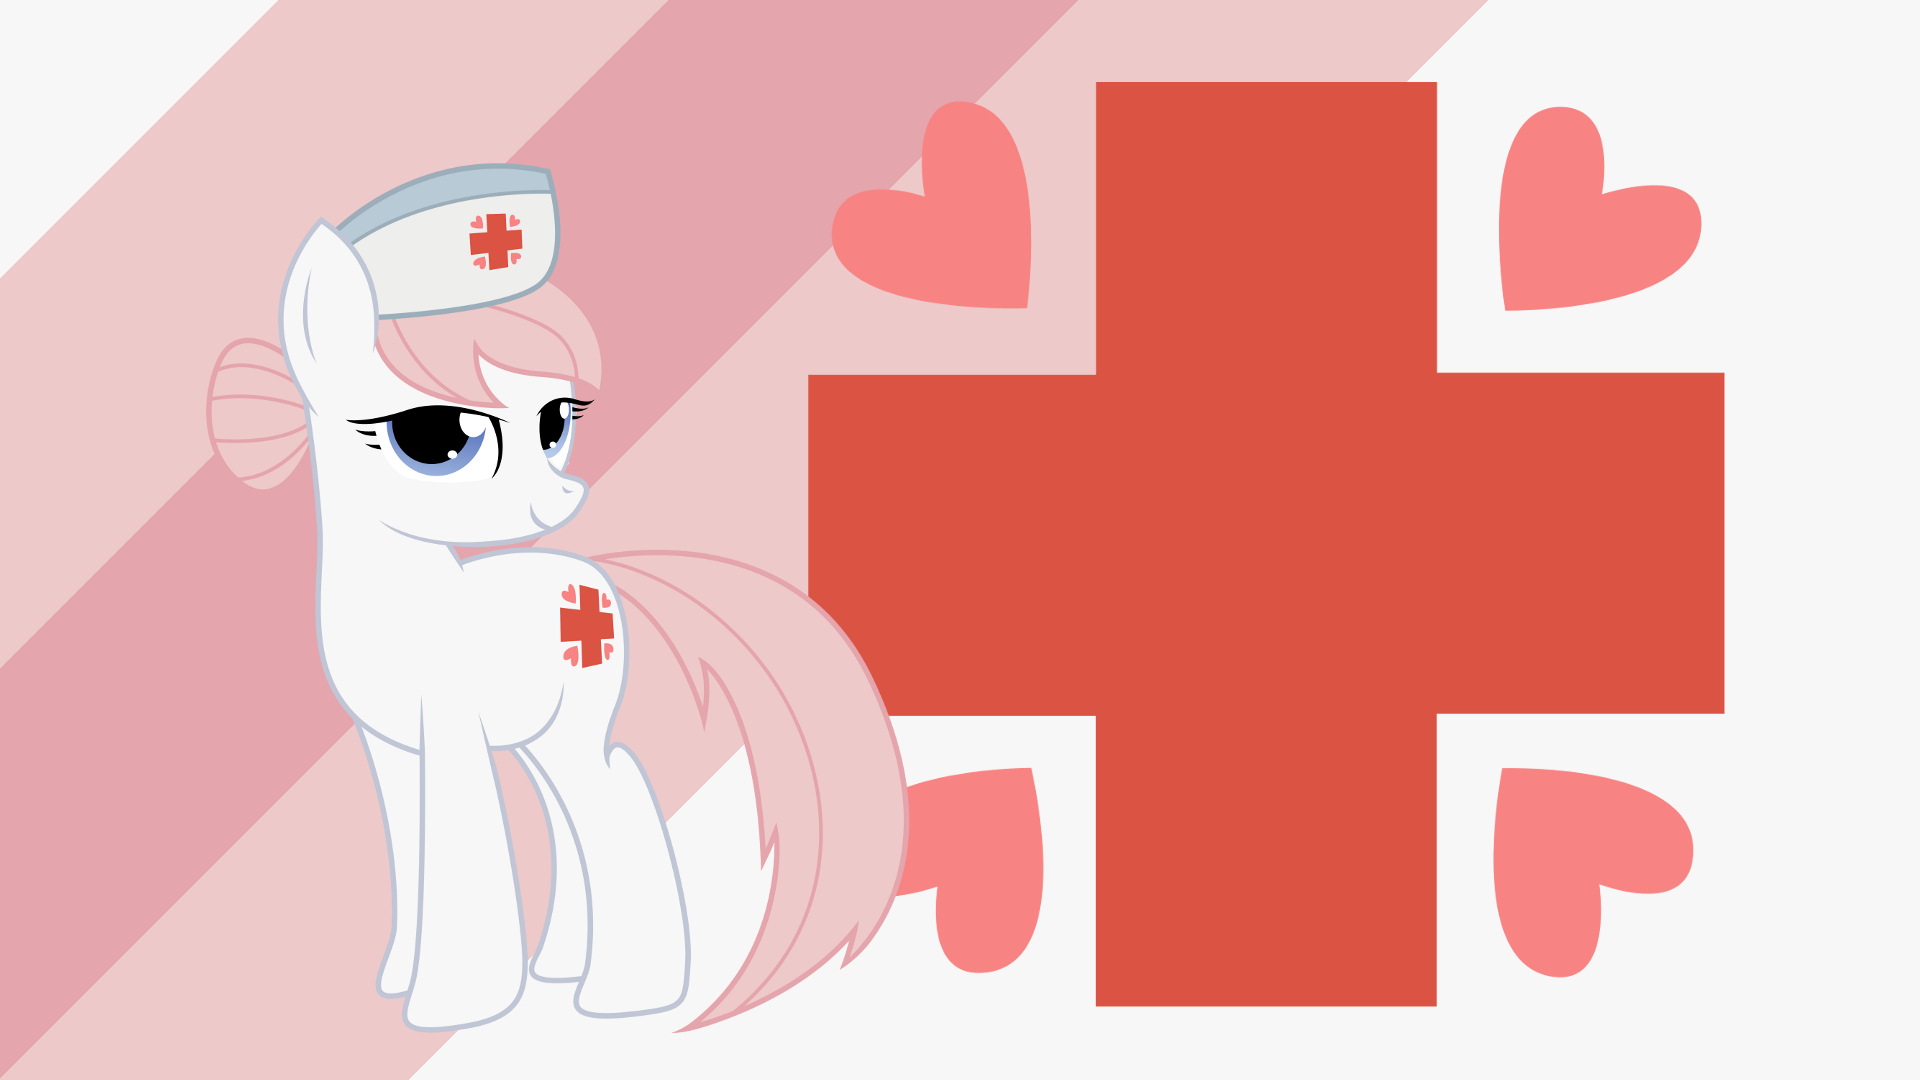 Minimalist Wallpaper 47: Nurse Redheart by Kooner-cz, Softfang and The-Smiling-Pony